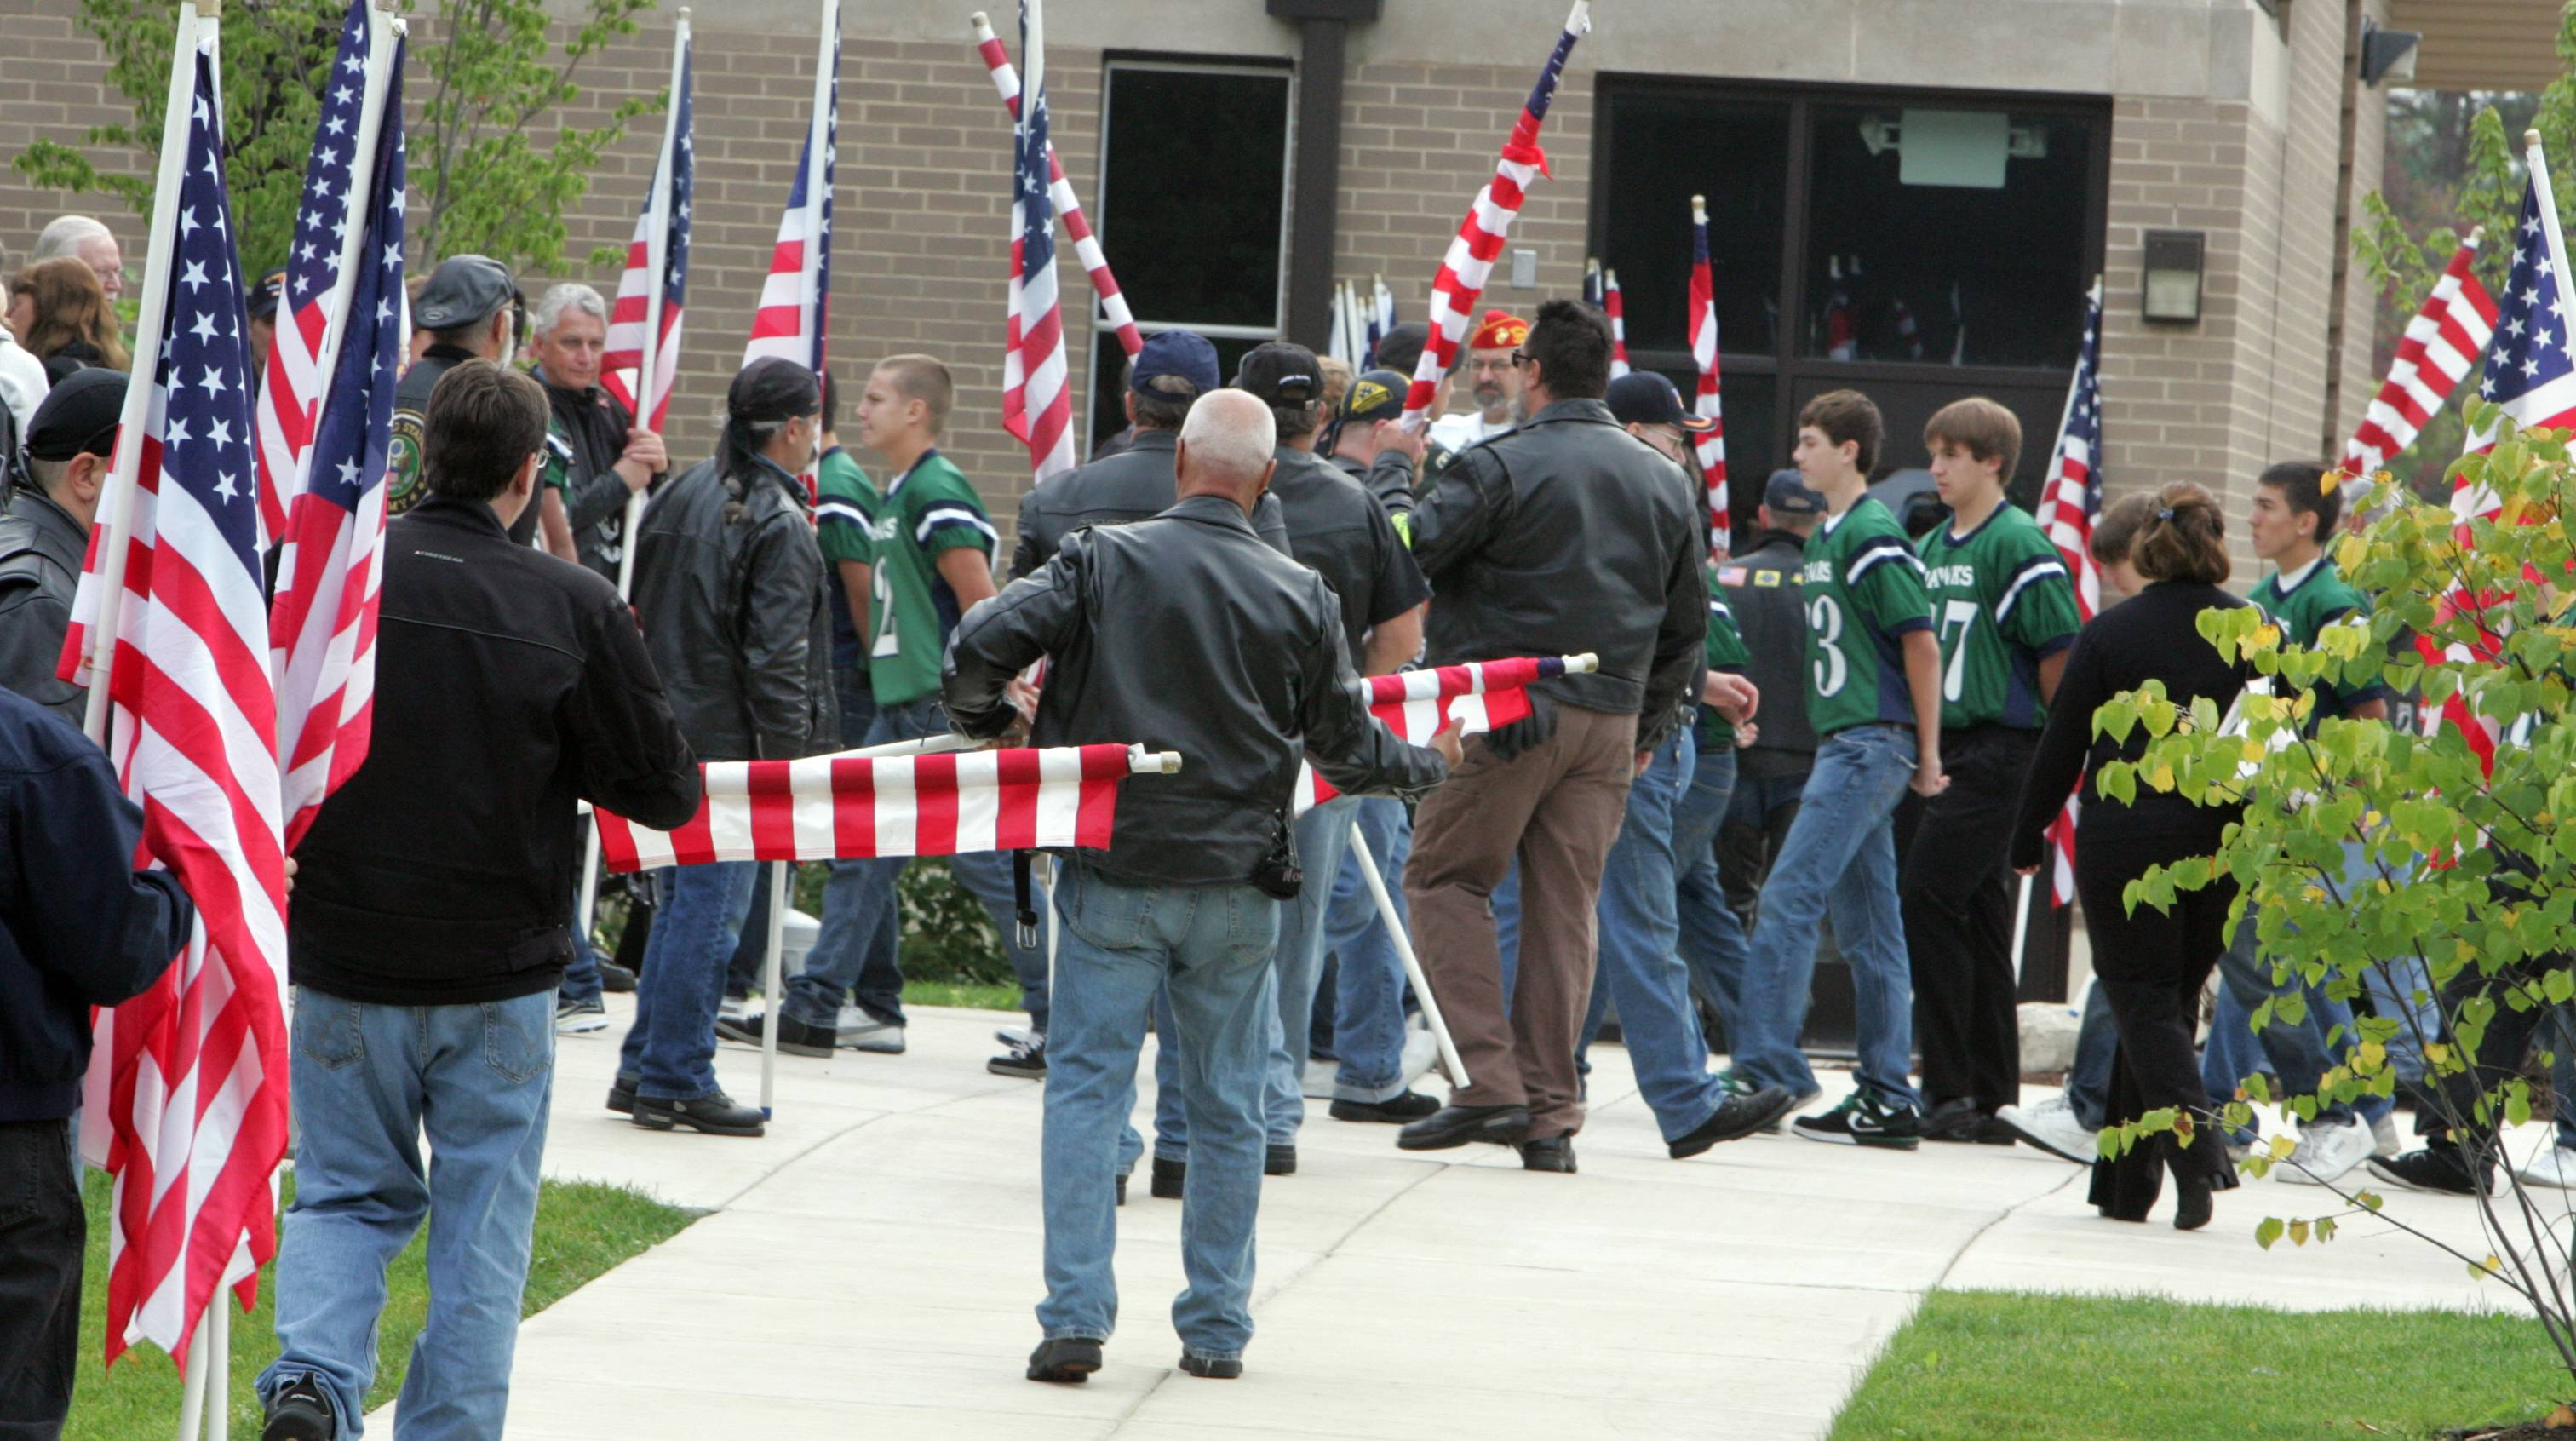 Family, friends honor soldier